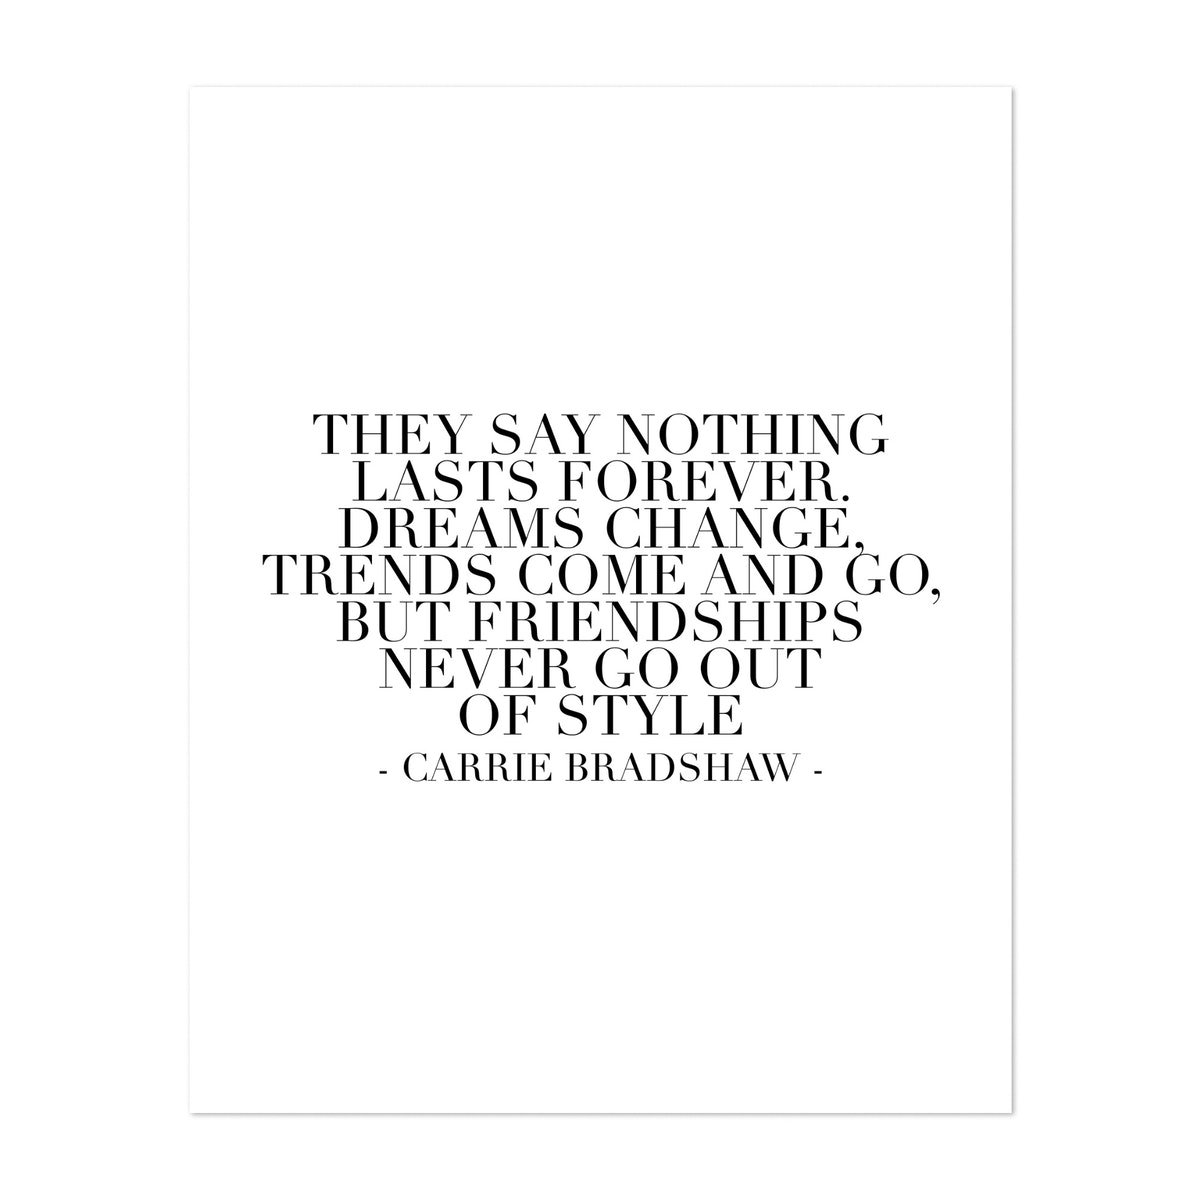 They Say Nothing Lasts Forever. Dreams Change, Trends Come and Go, But Friendships Never Go Out of Style. -Carrie Bradshaw Quote